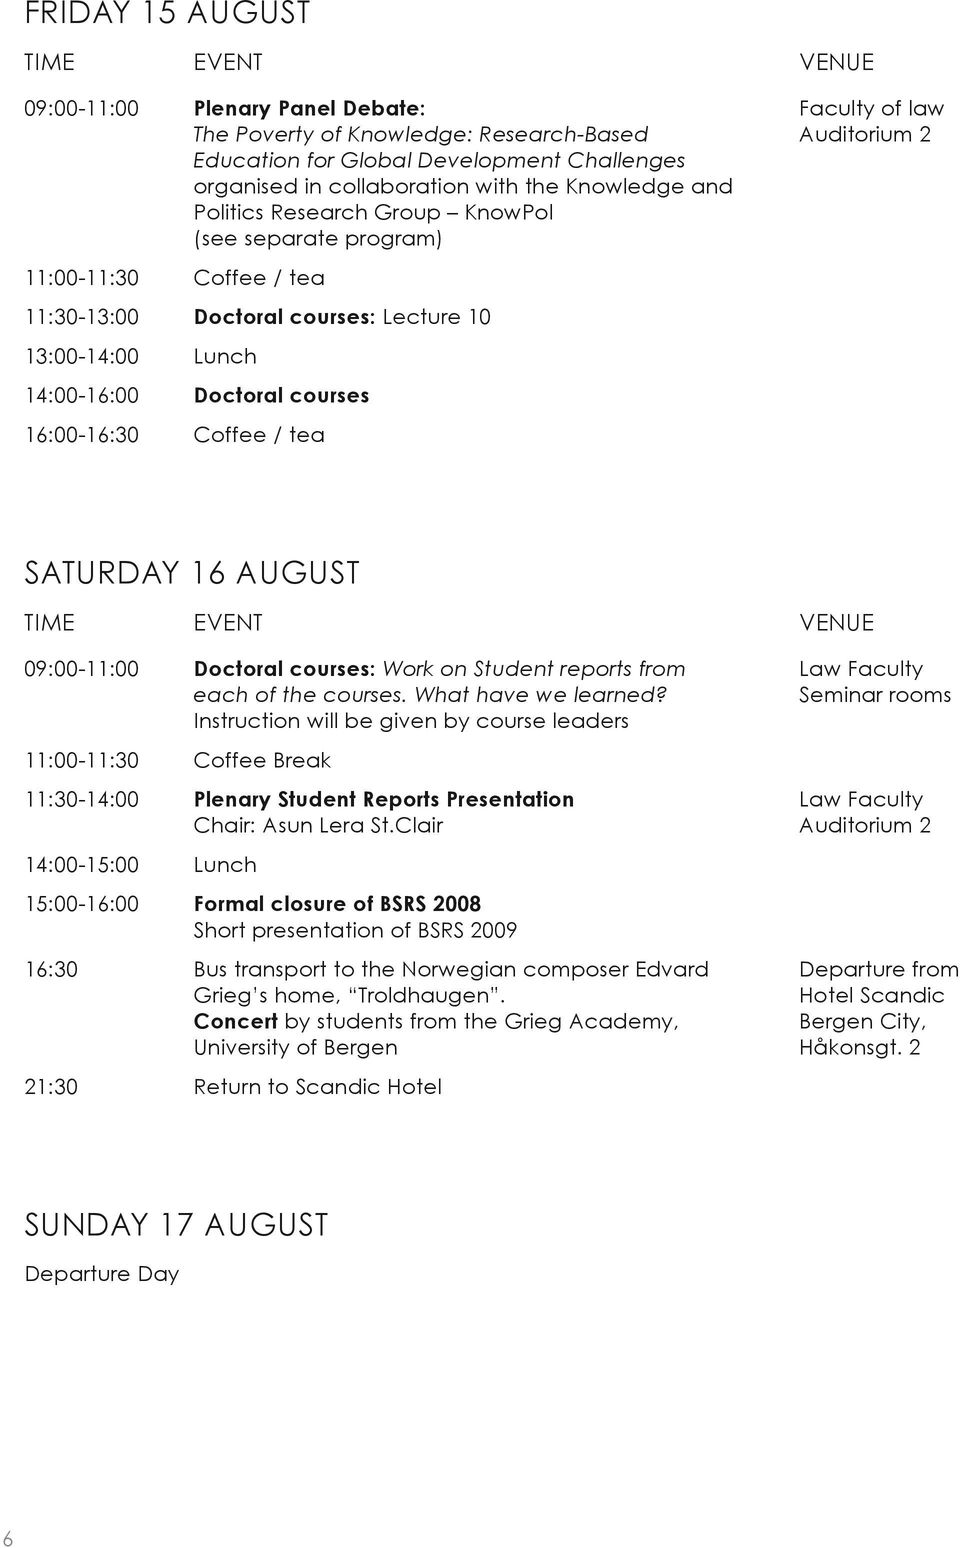 16:00-16:30 Coffee / tea Saturday 16 August Time Event Venue 09:00-11:00 Doctoral courses: Work on Student reports from each of the courses. What have we learned?